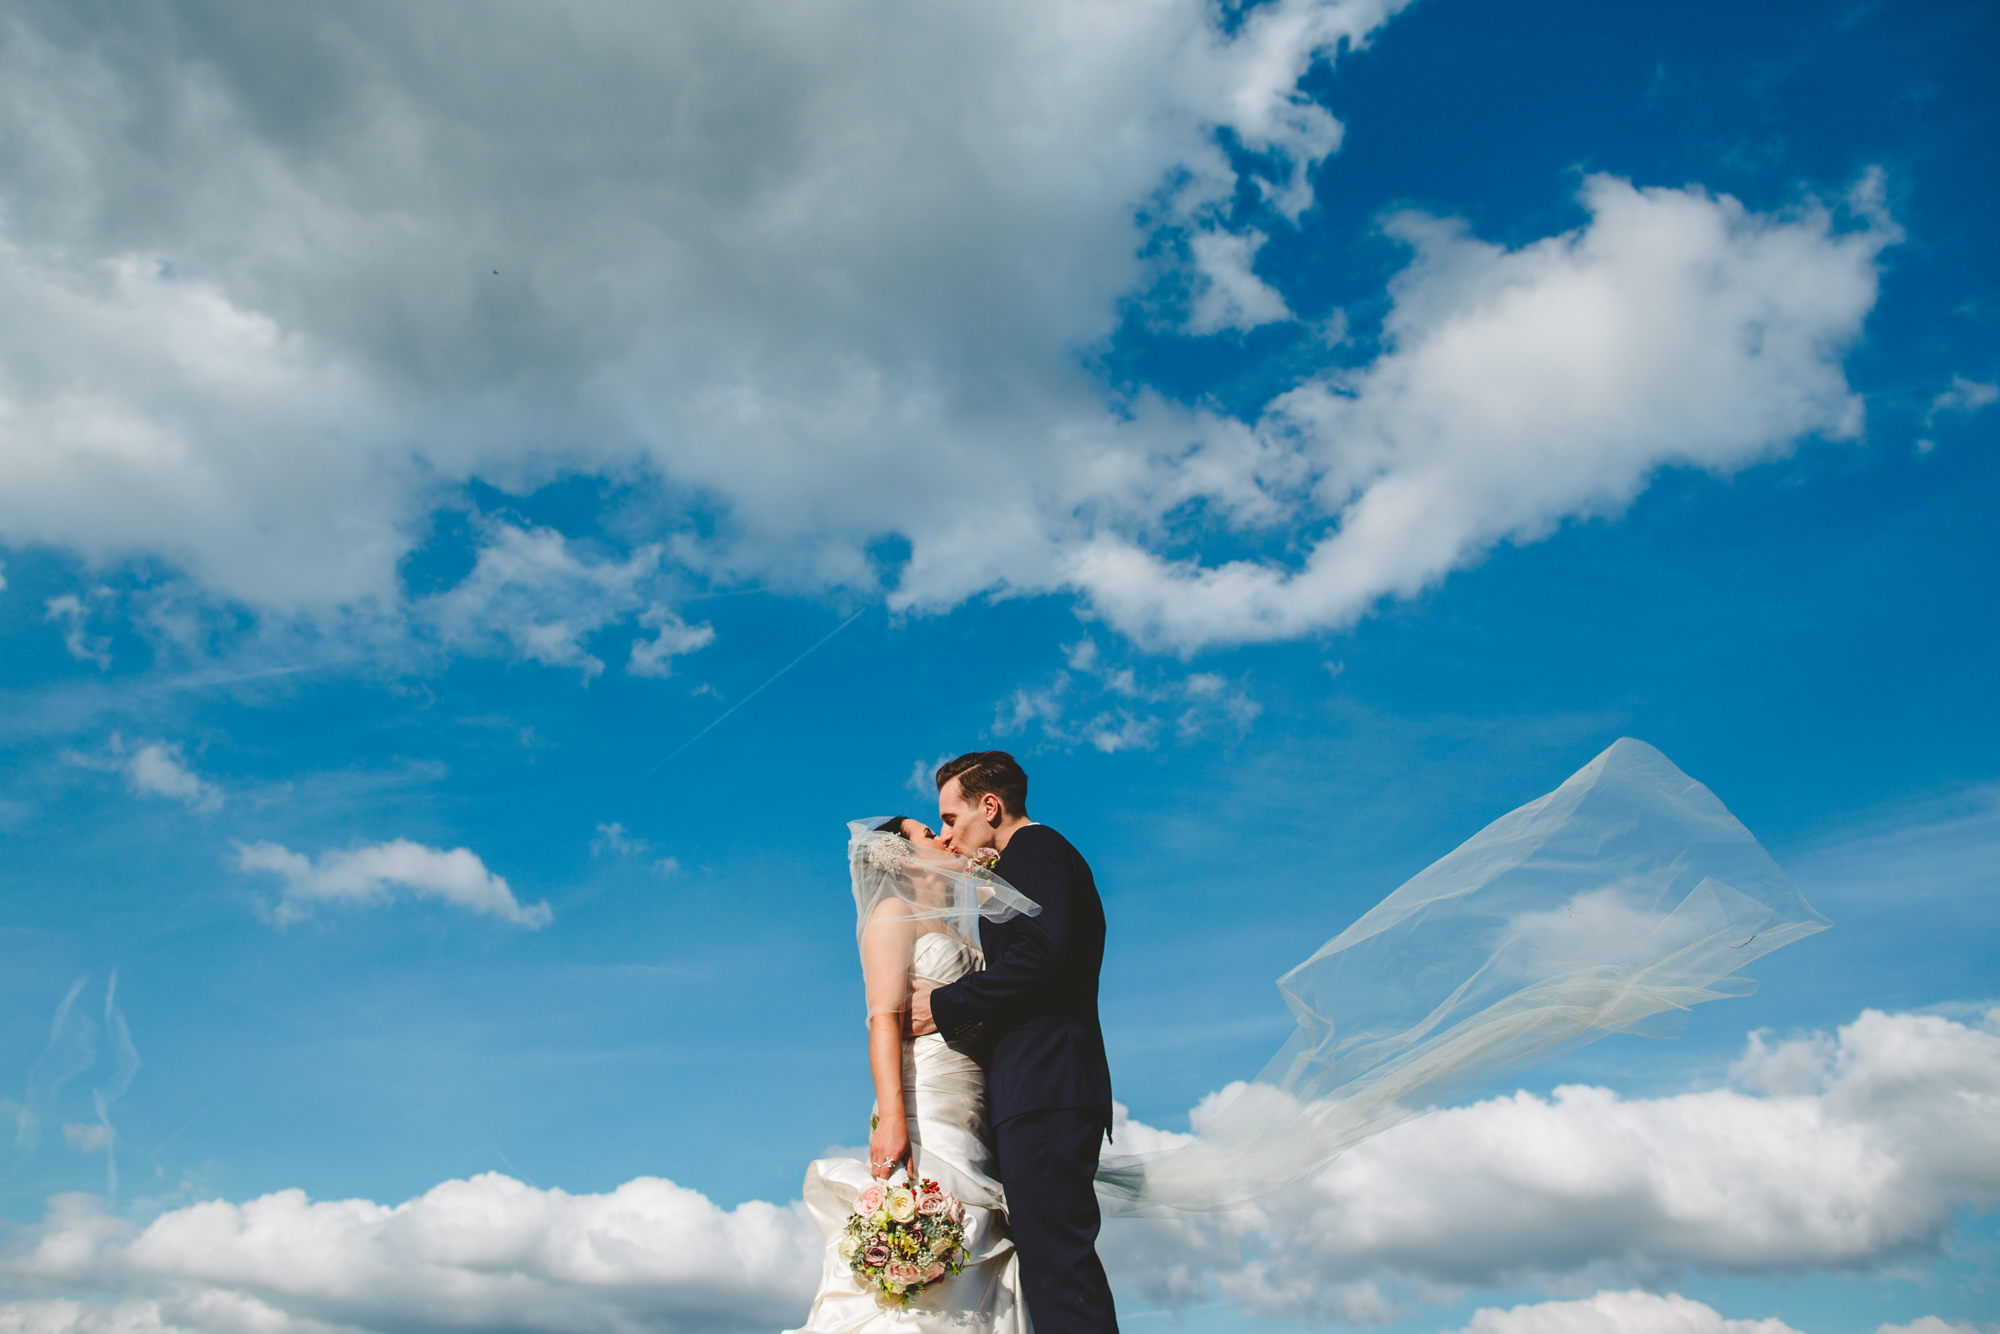 kissing couple against blue sky wedding photo